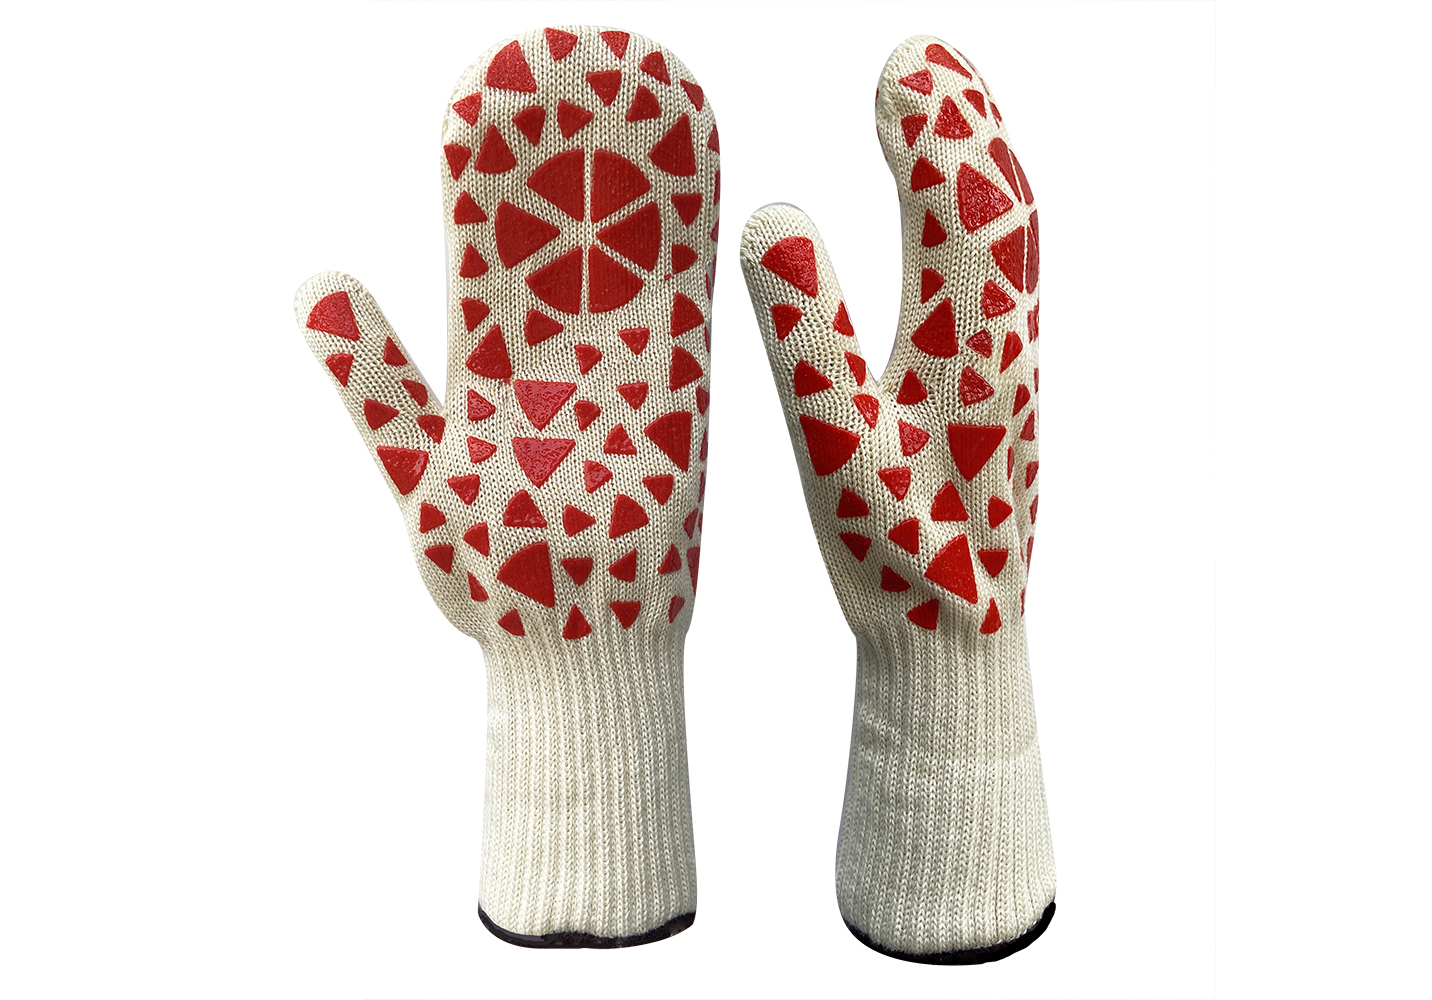 Heat Resistant Mitt with Silicone Pattern/HRG-025